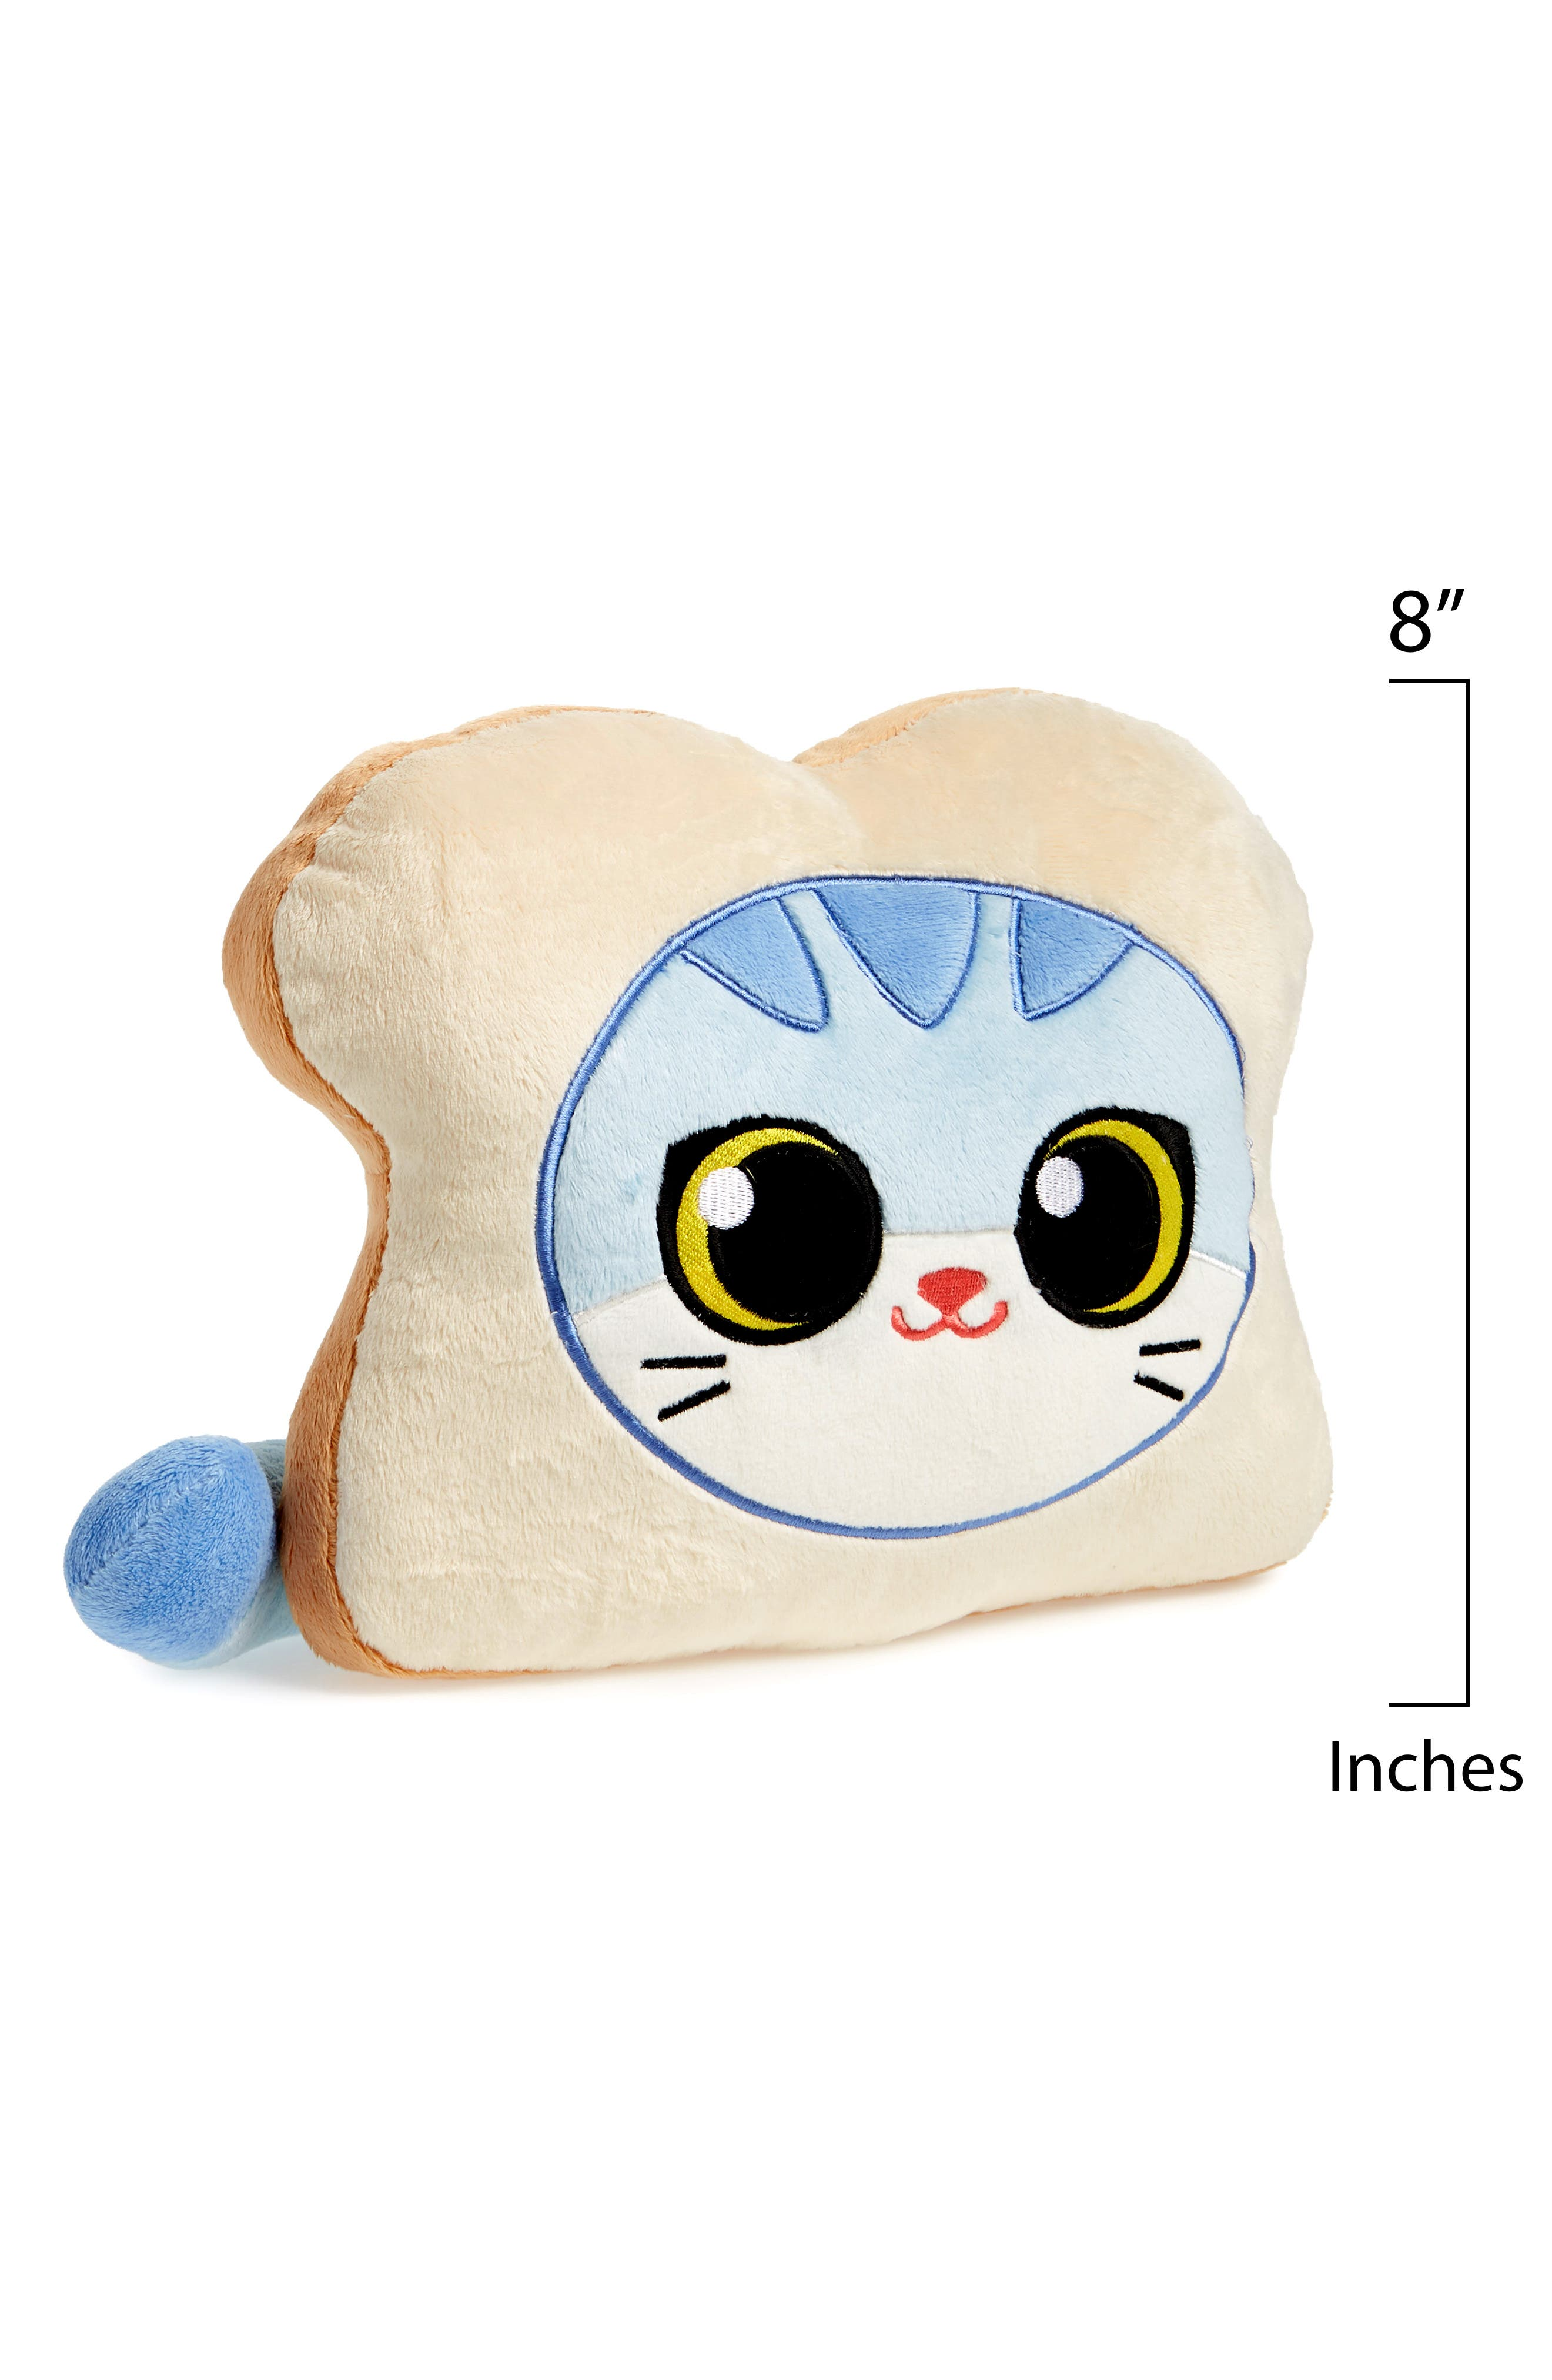 Cat Bread Stuffed Pillow,                             Alternate thumbnail 2, color,                             270